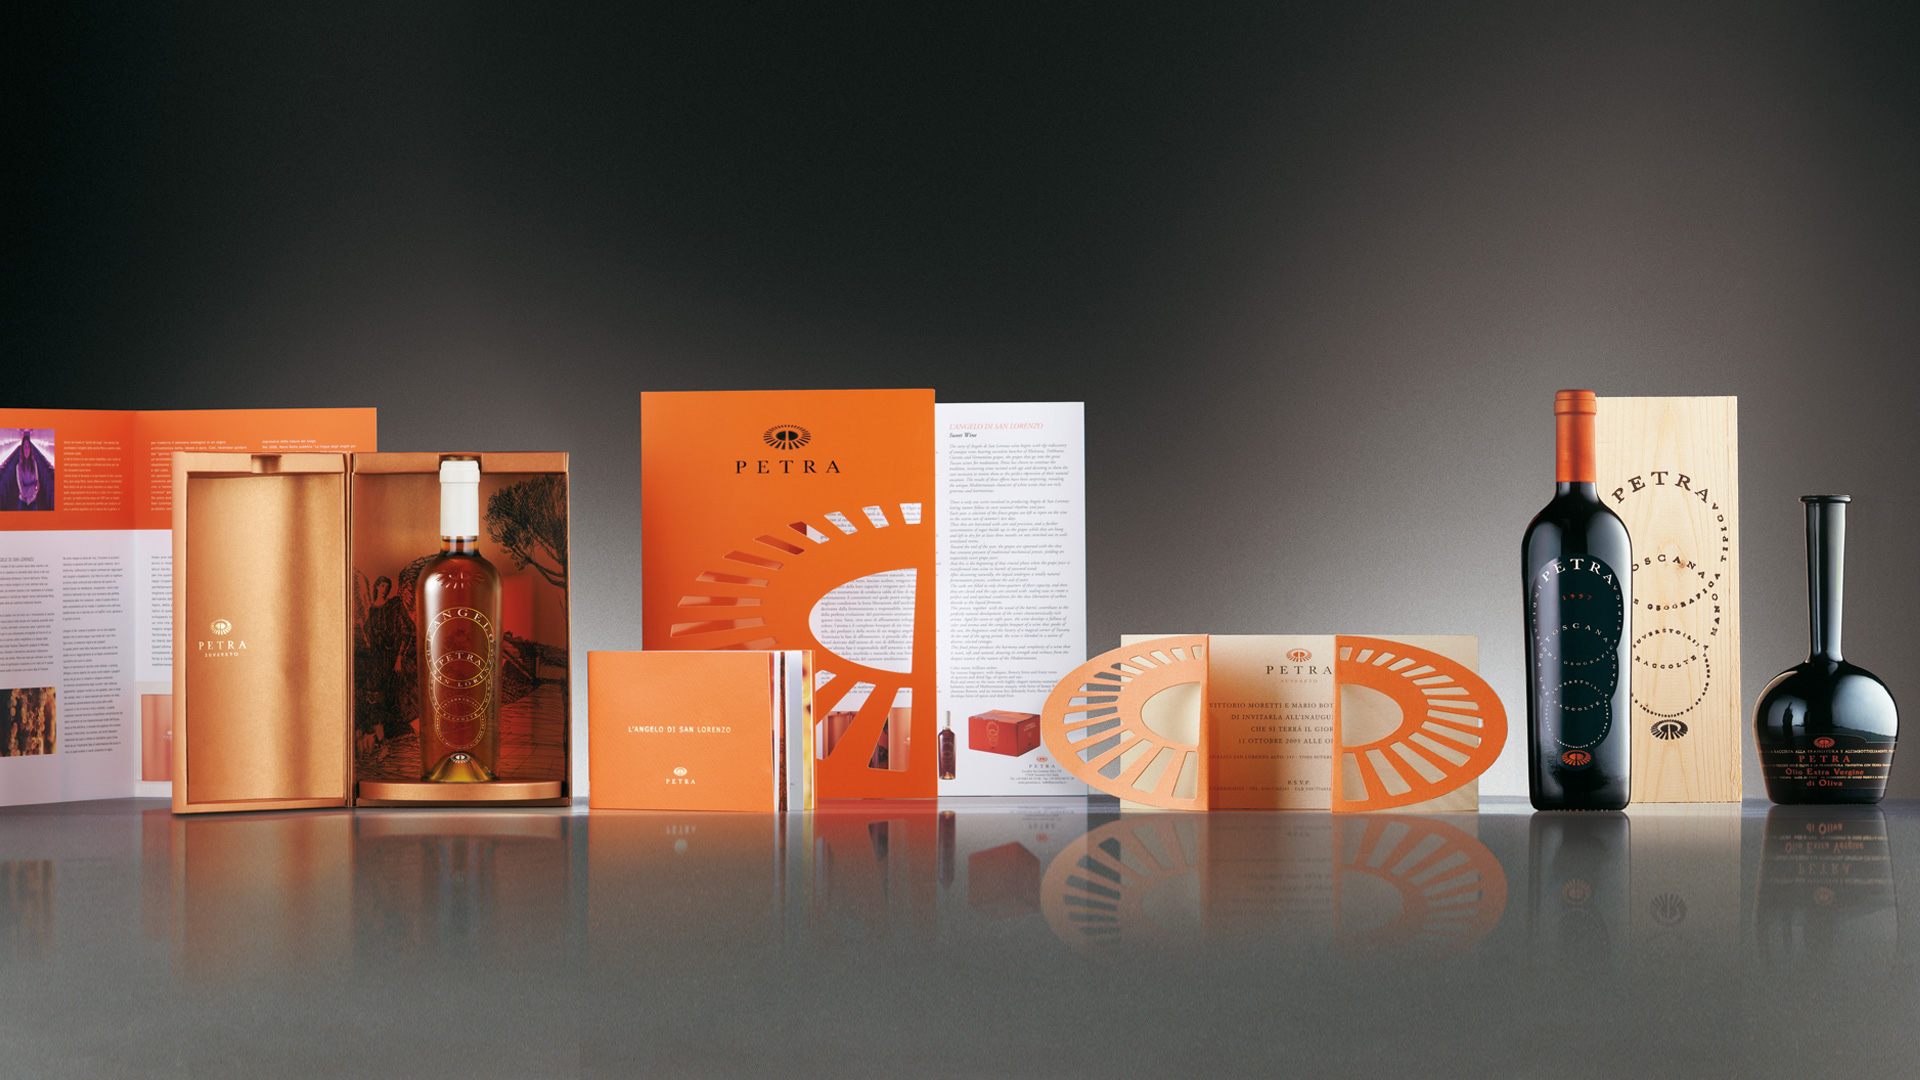 Petra packaging and secondary packaging